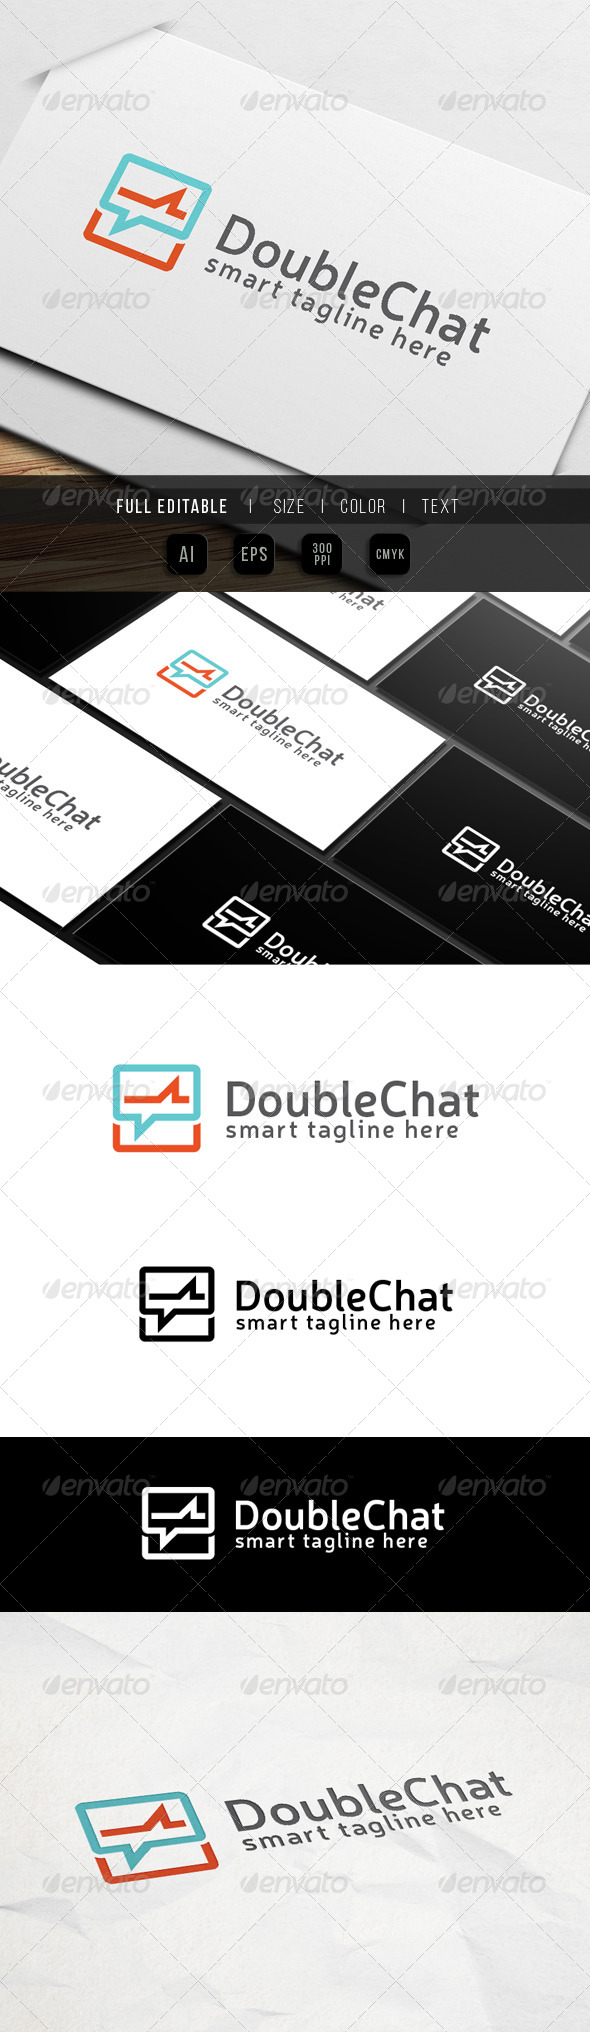 GraphicRiver Double Chat 8509771